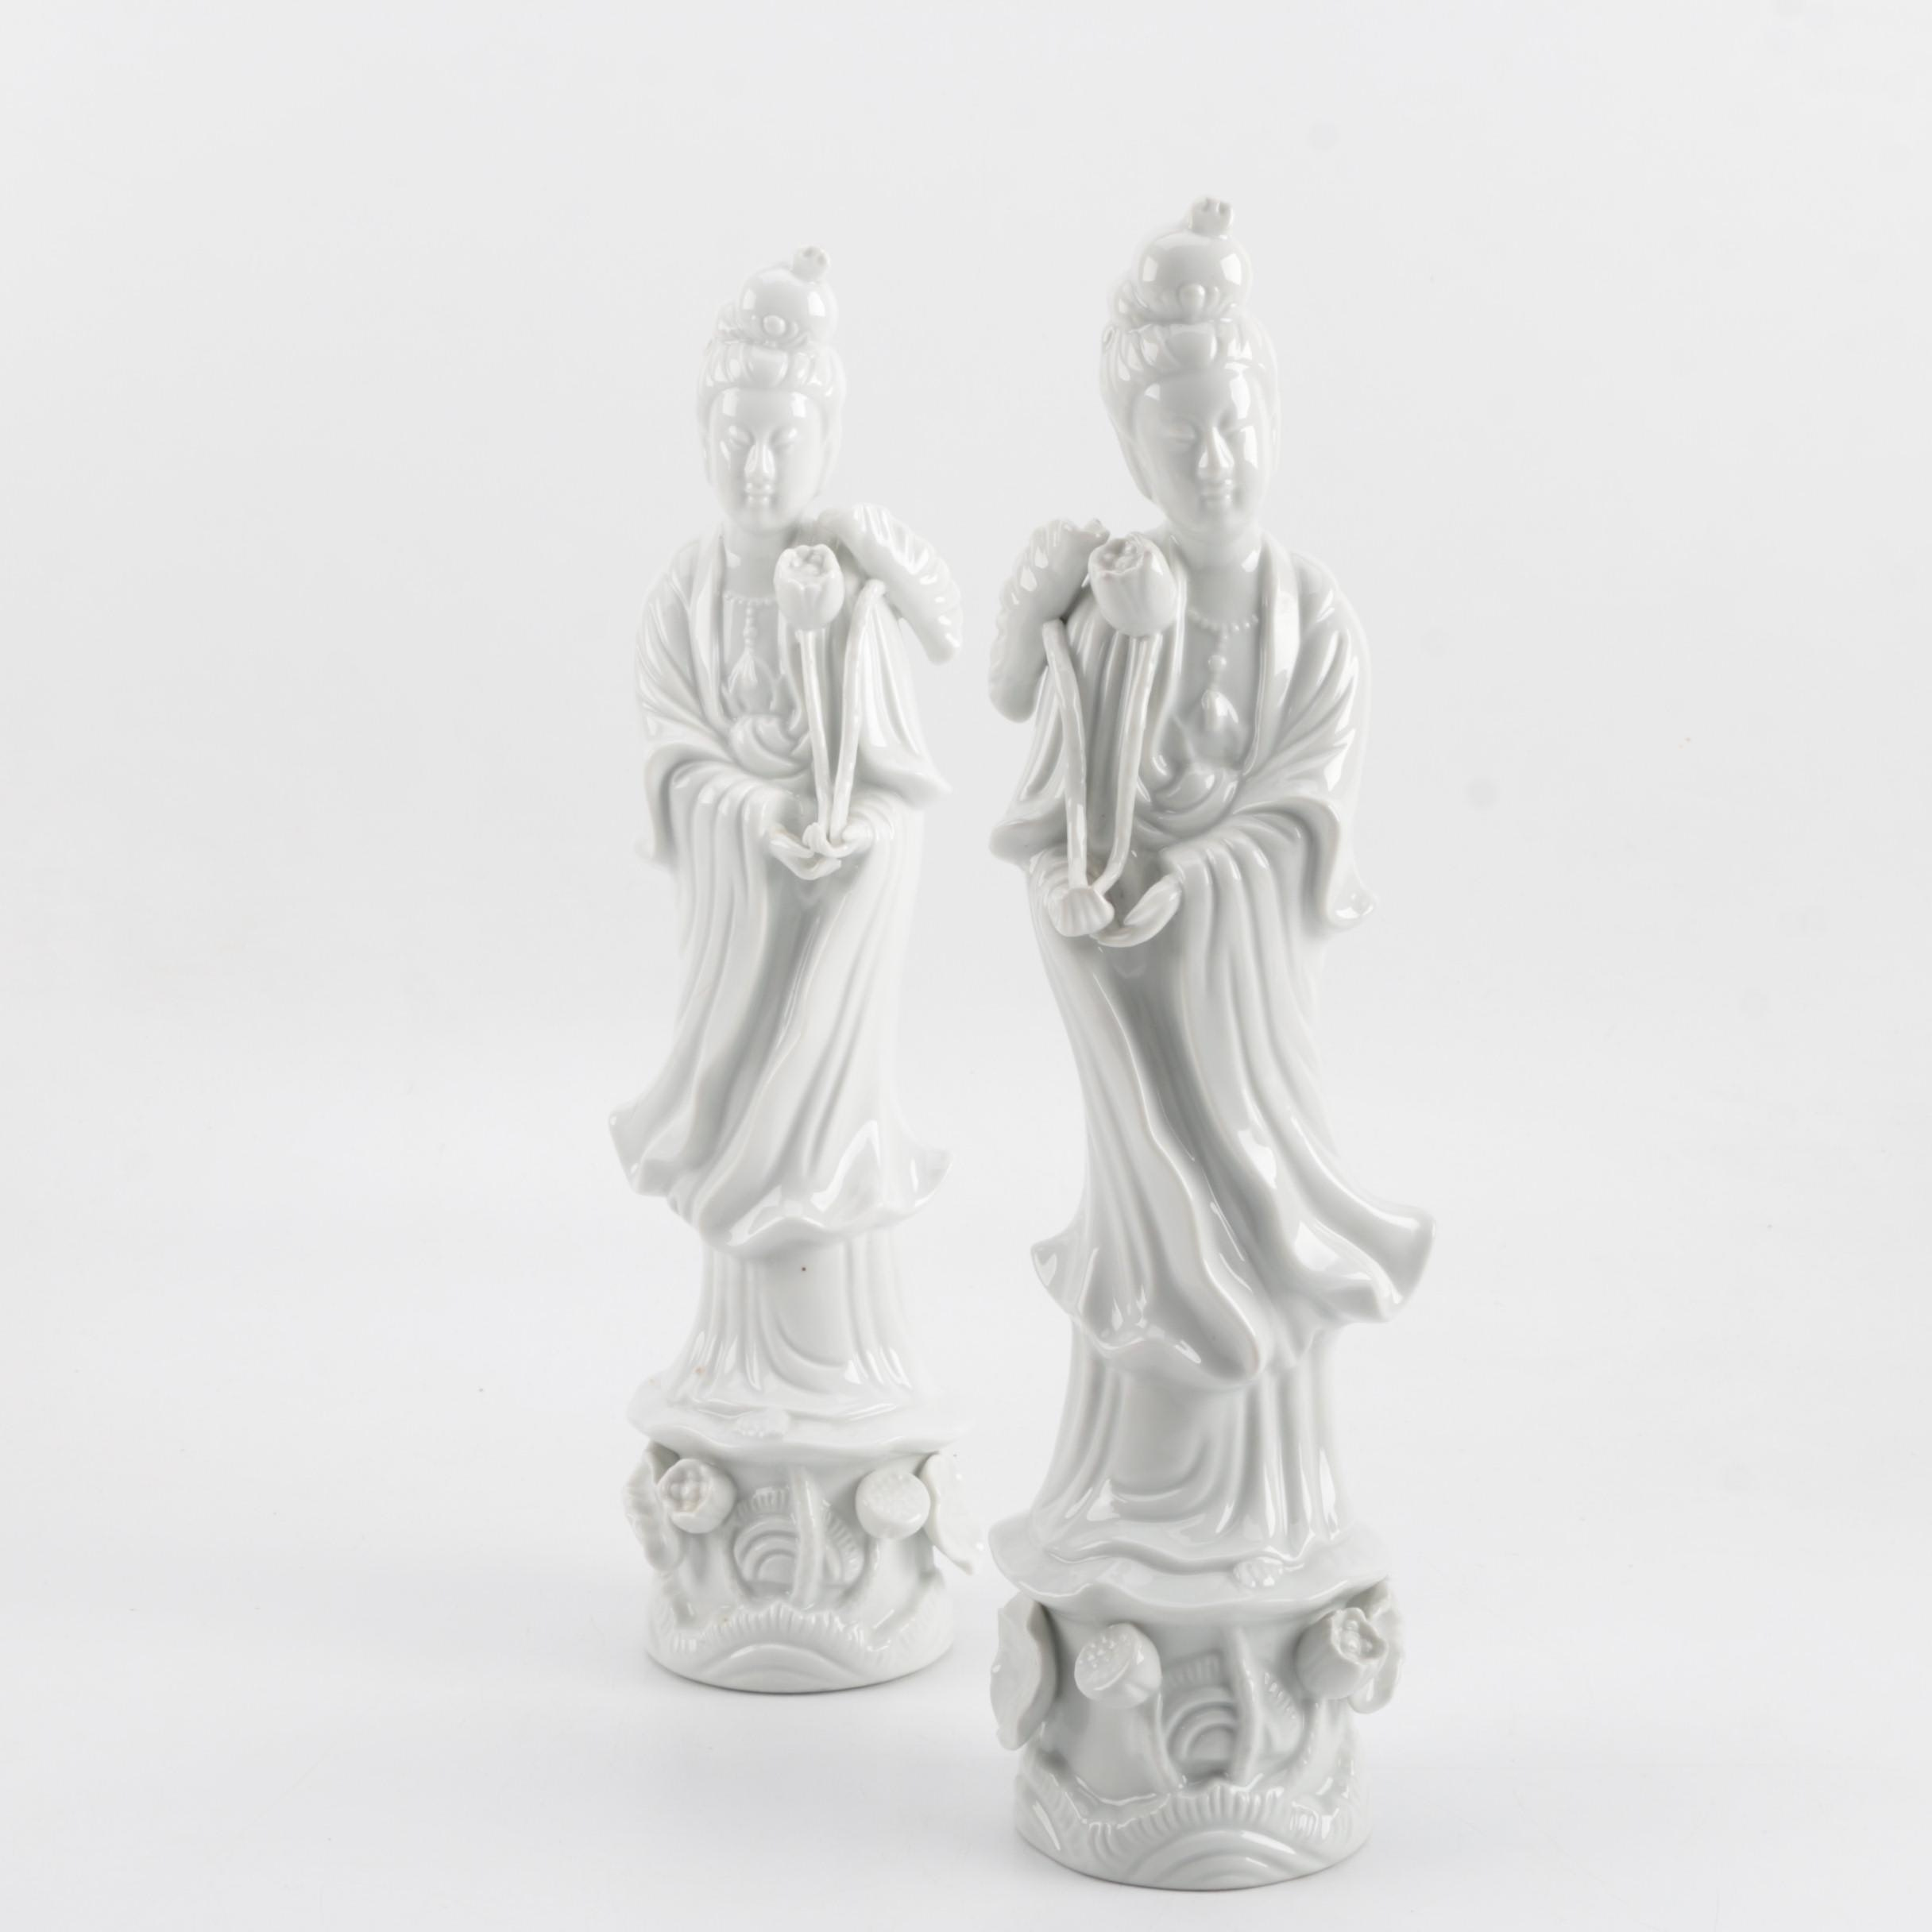 Guan Yin Figurines